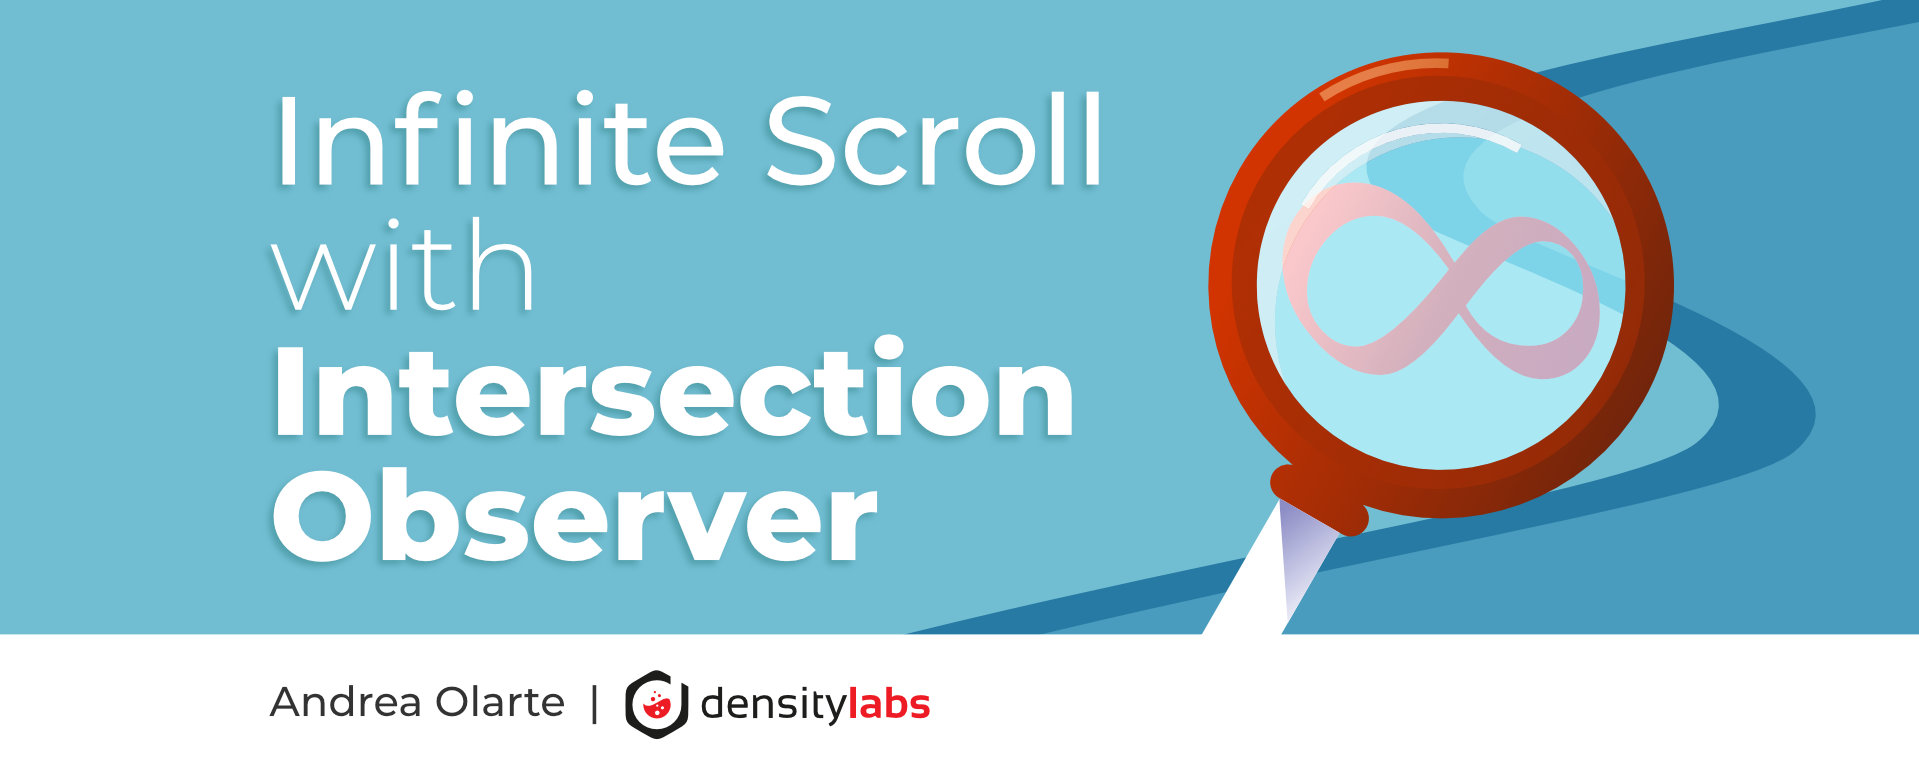 Infinite Scroll with Intersection Observer